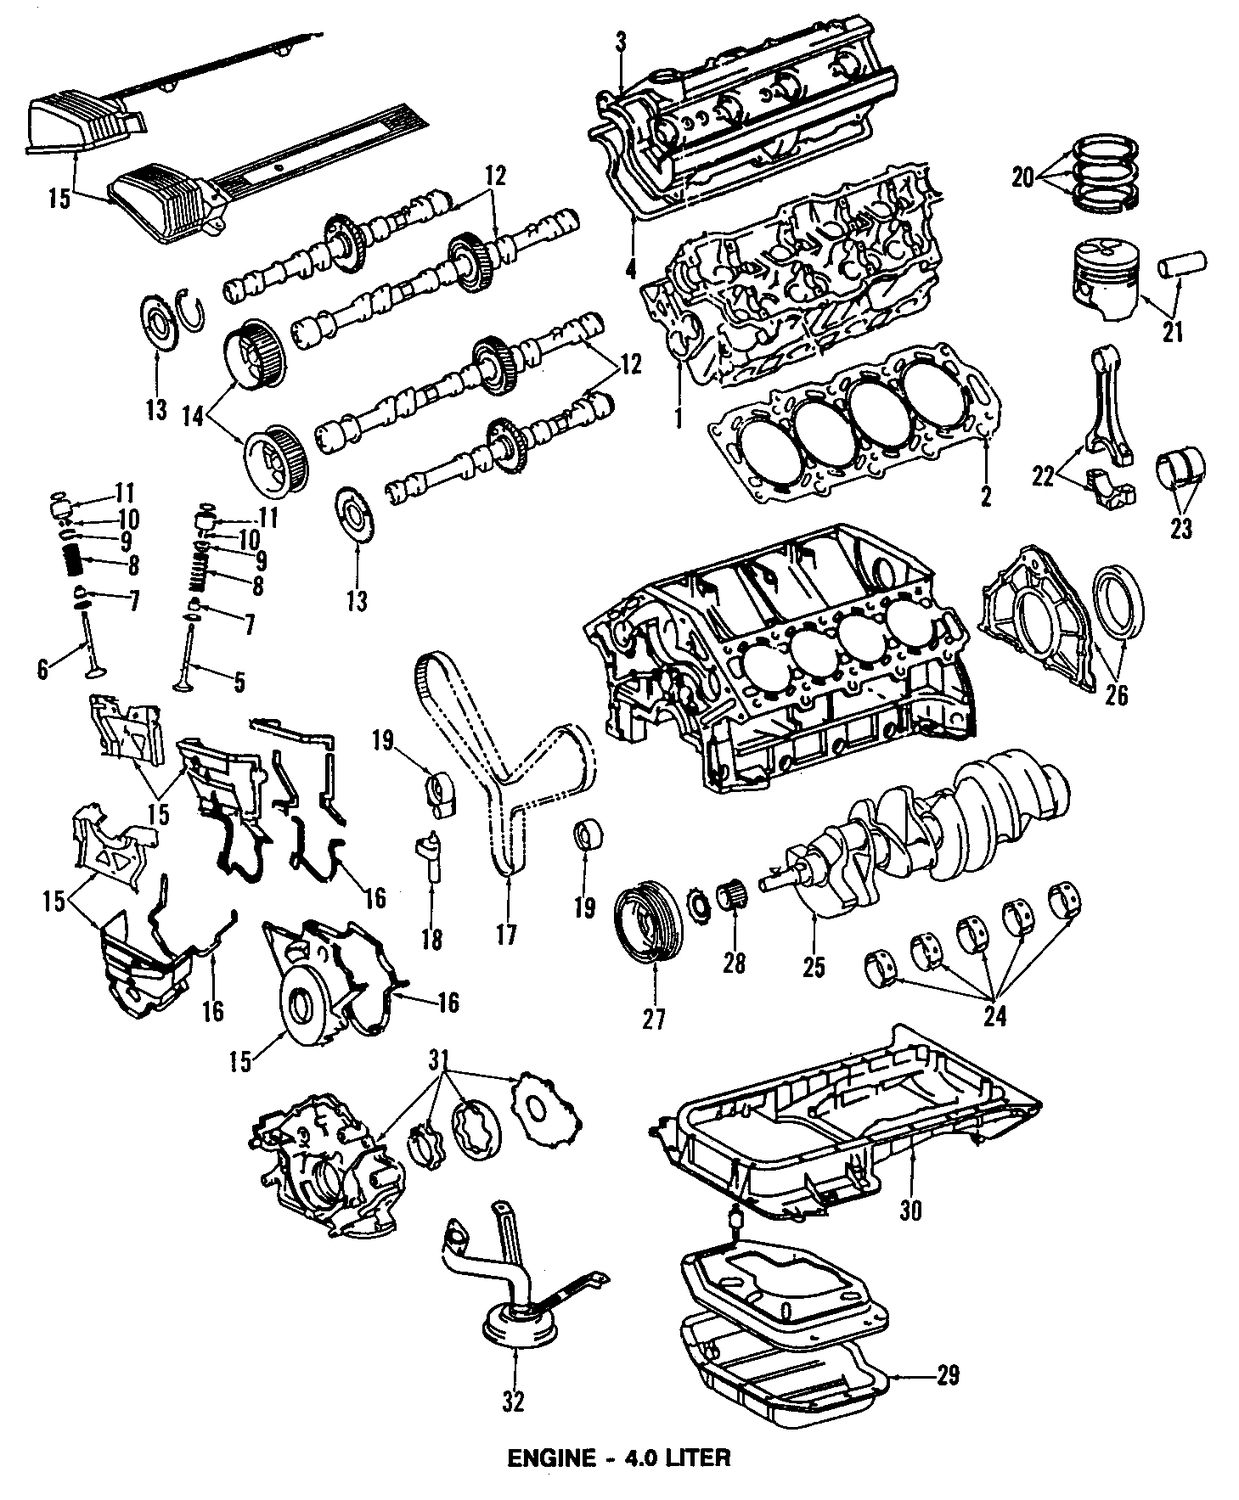 97 Lexus Es300 Engine Diagram Wiring Data Jeep Grand Cherokee Problems Diagrams Source